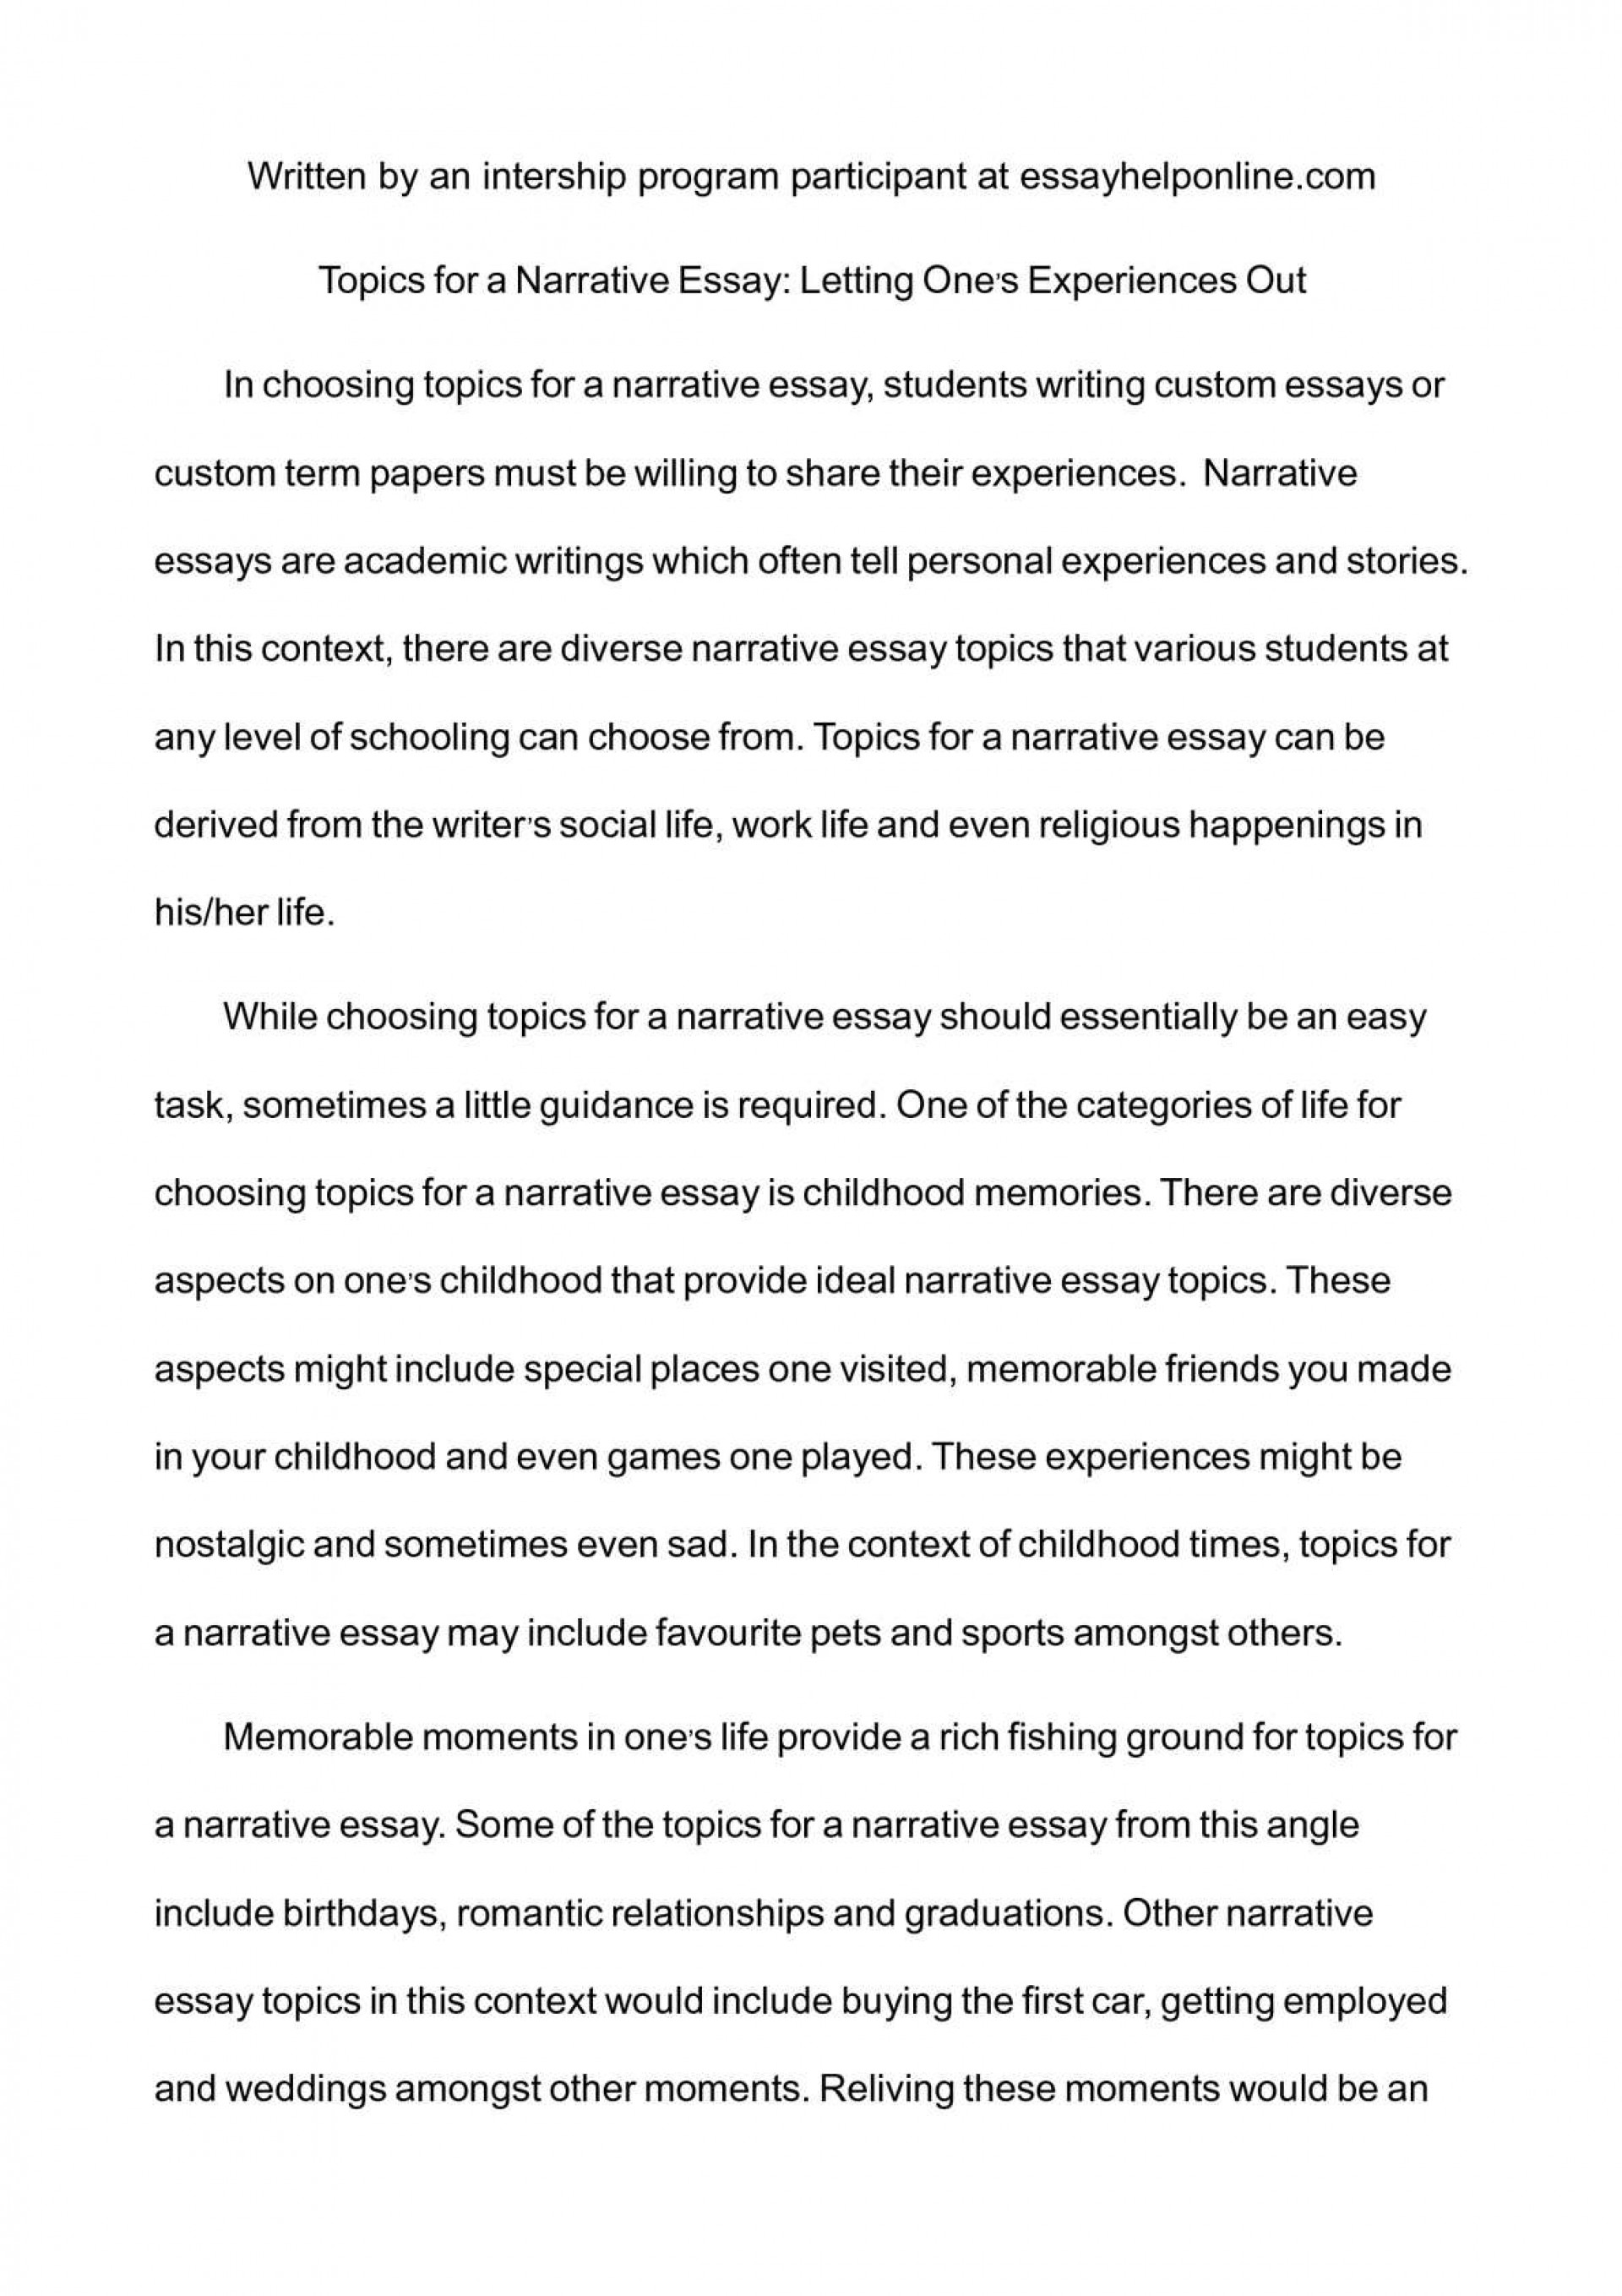 002 Topics For Narrative Essay Example Imposing A Essays College Students 3 1920